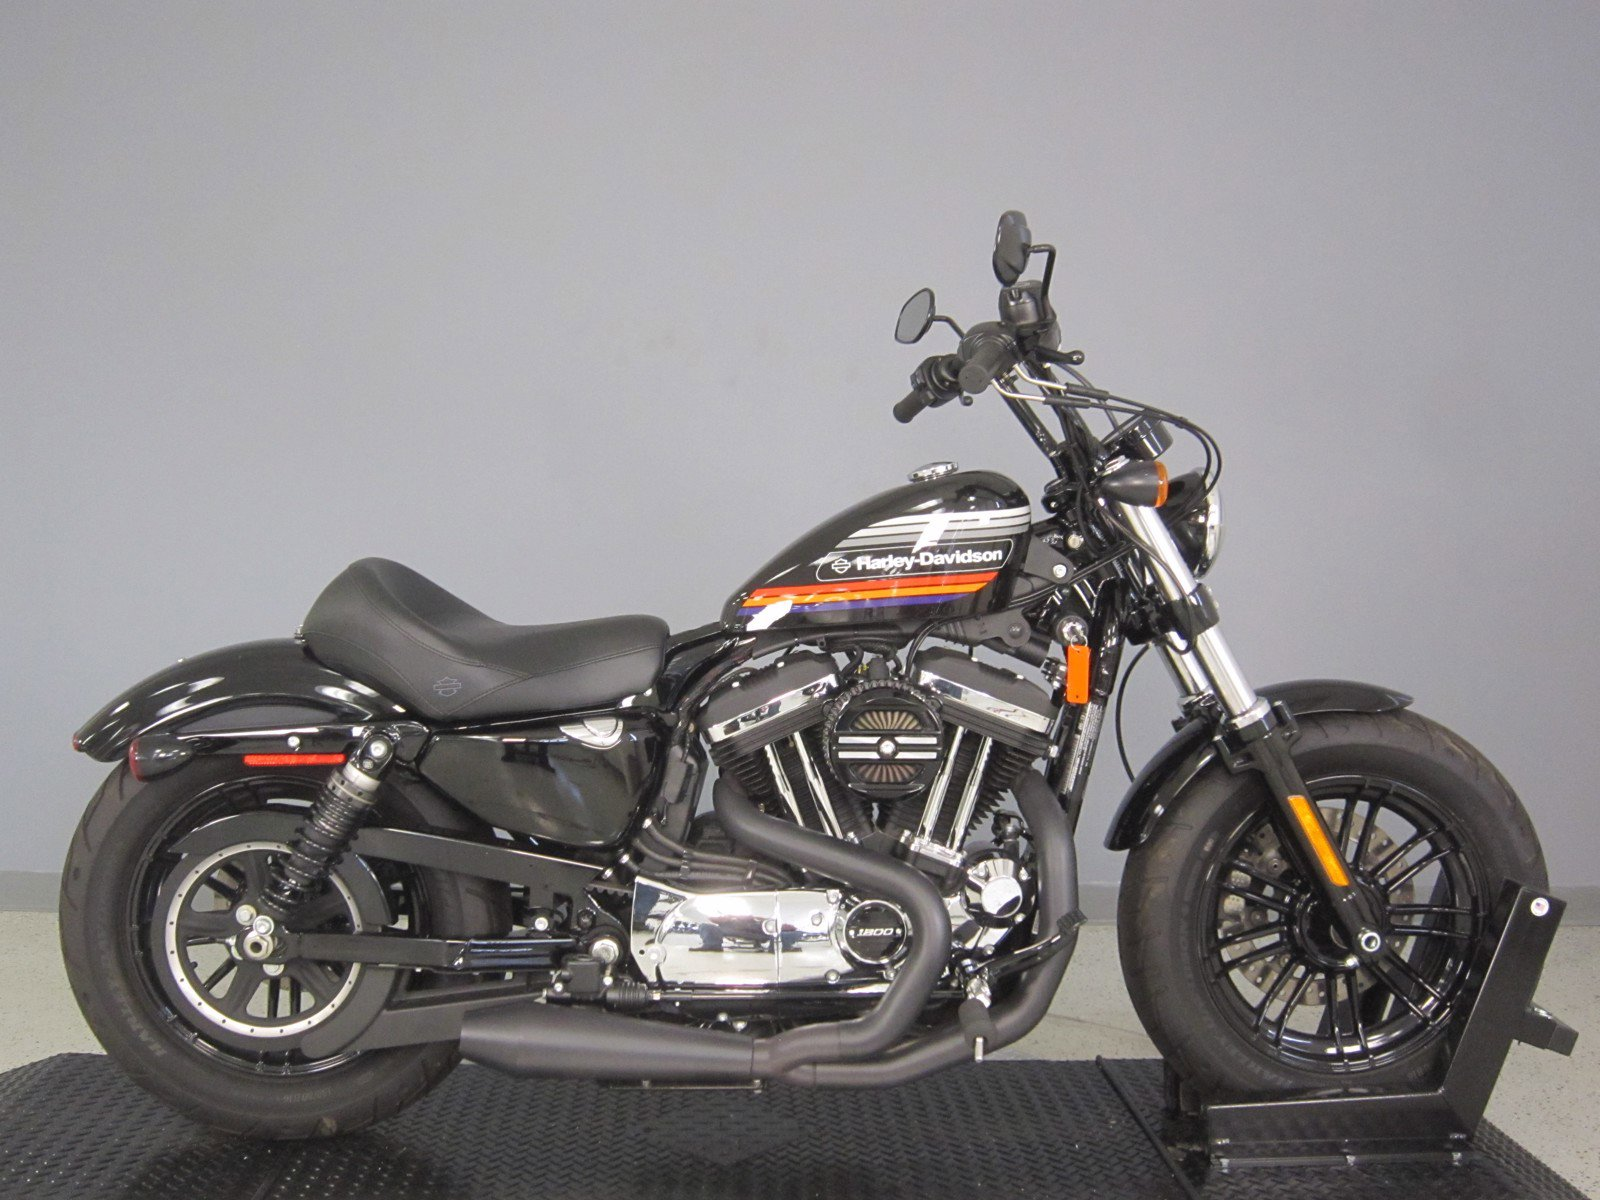 Pre Owned 2018 Harley Davidson Sportster Forty Eight Special Xl1200xs Sportster In Manchester U425286 Manchester Harley Davidson